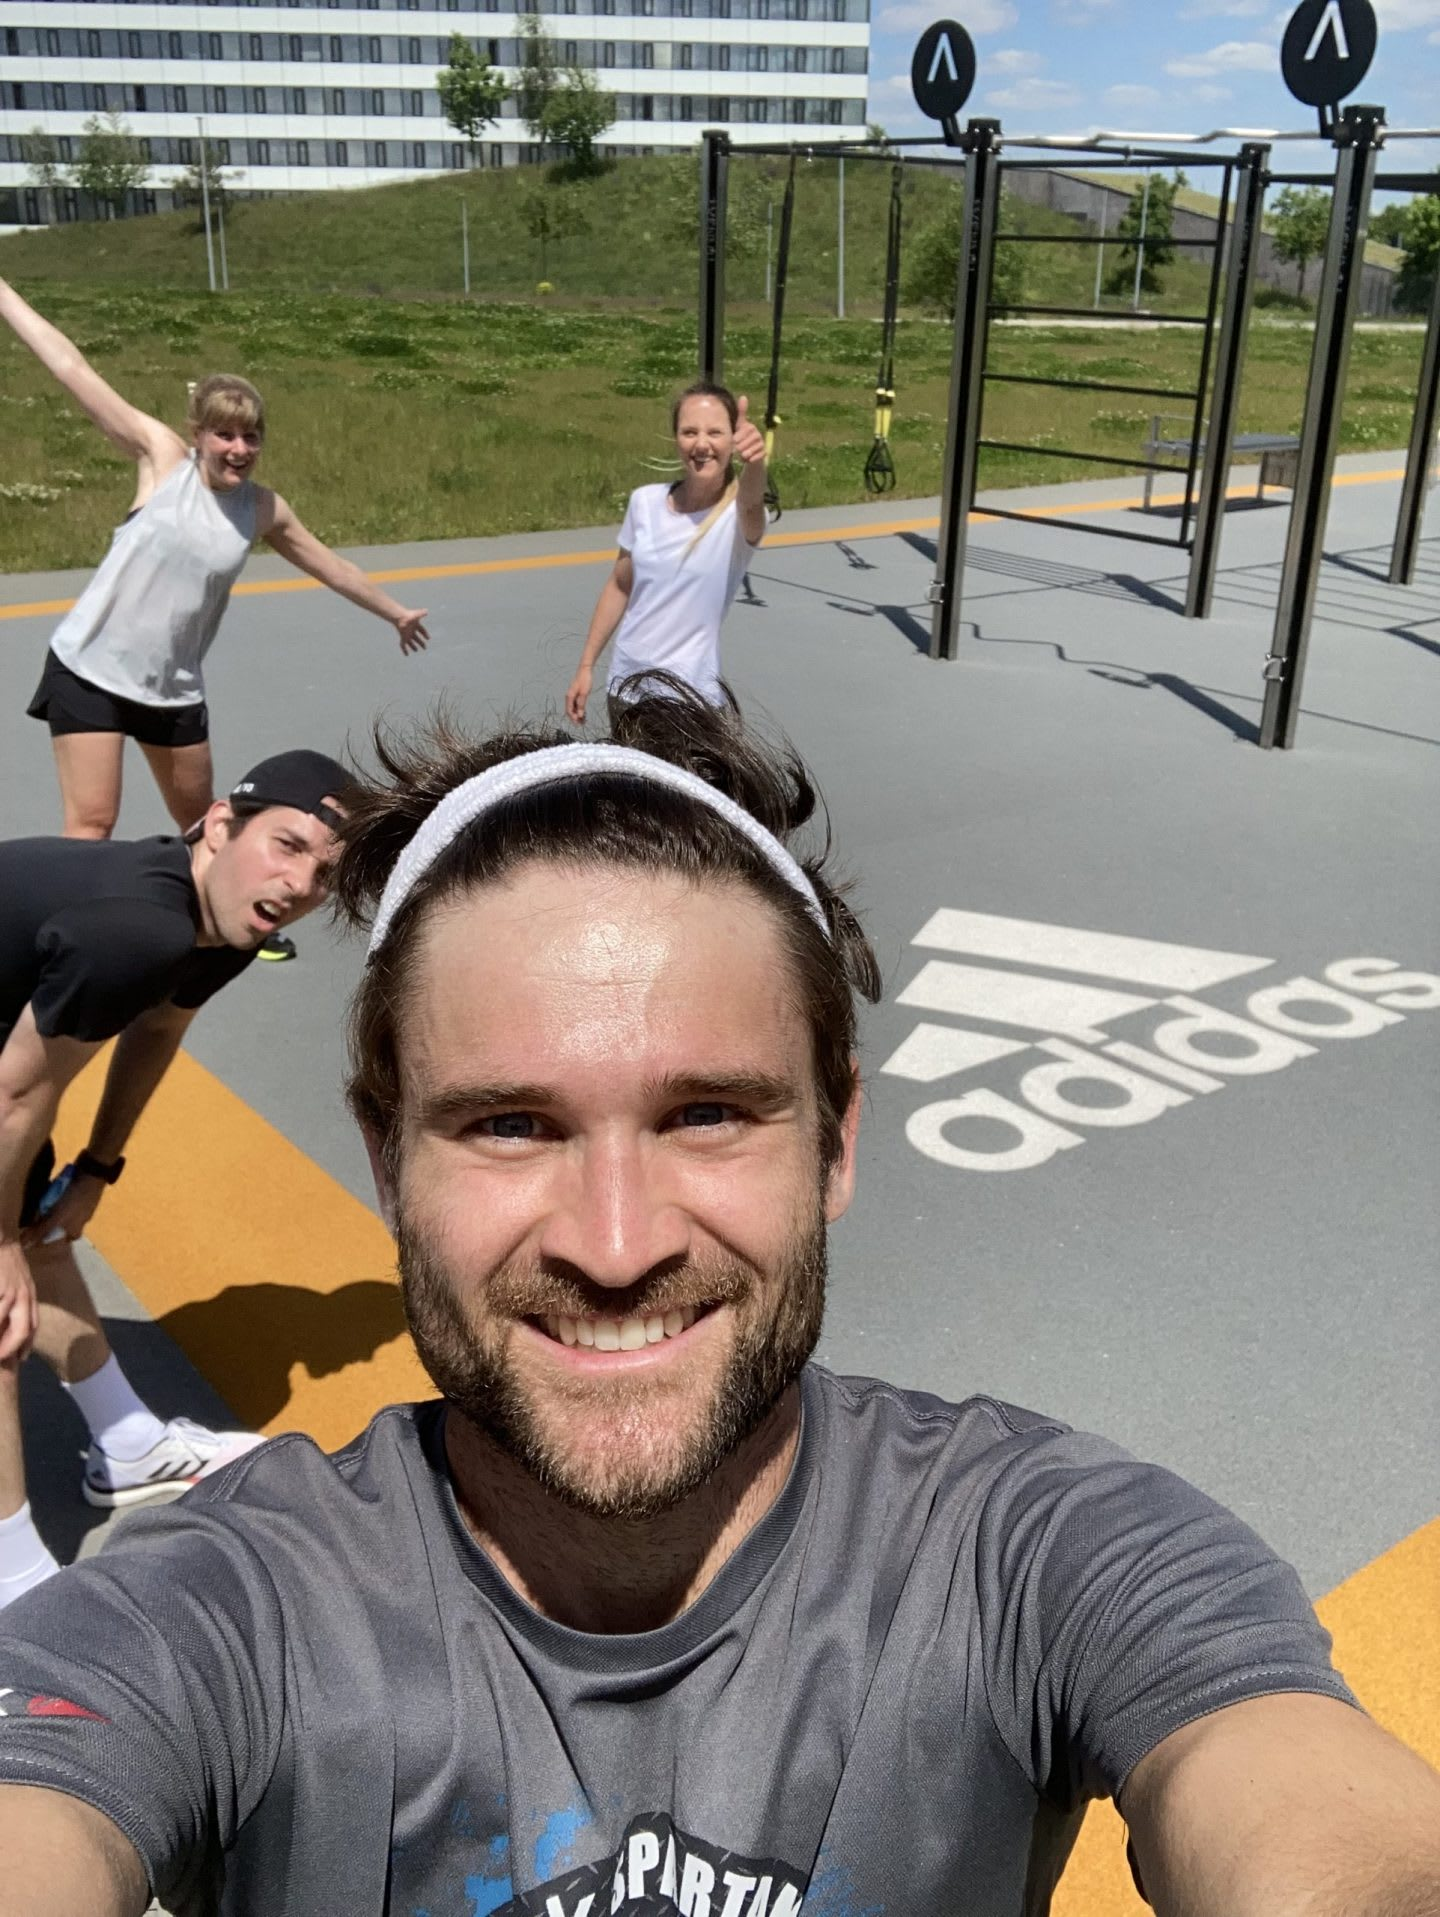 Men and women doing outdoor working in an outdoor gym, adidas, HQ, headquarters, Herzogenaurach, Germany, sports, company